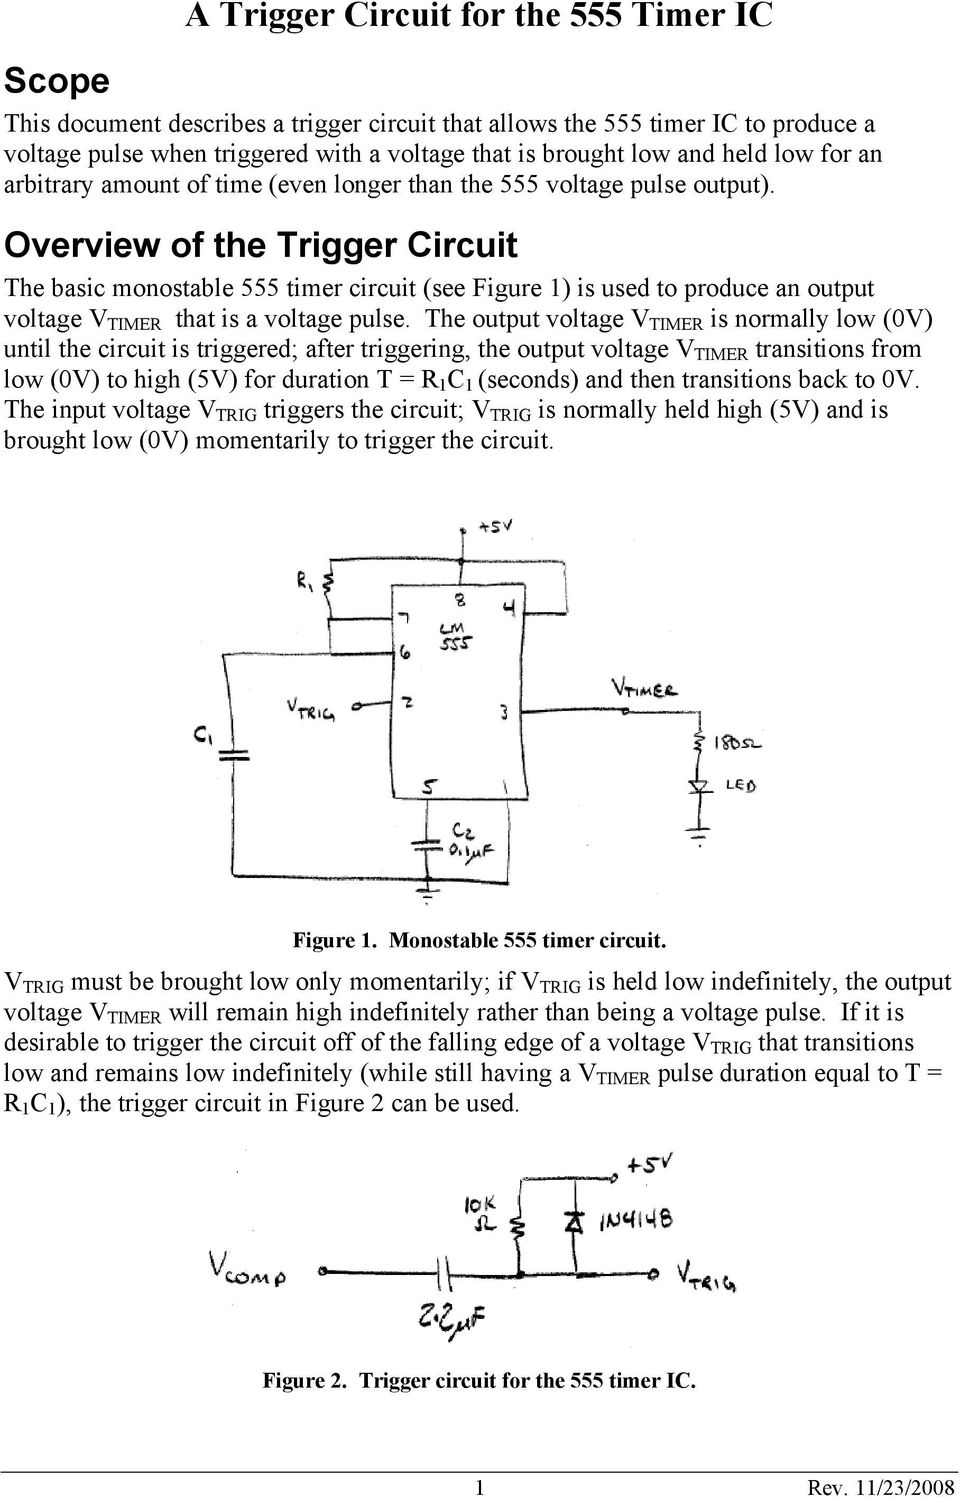 A Trigger Circuit for the 555 Timer IC Scope - PDF